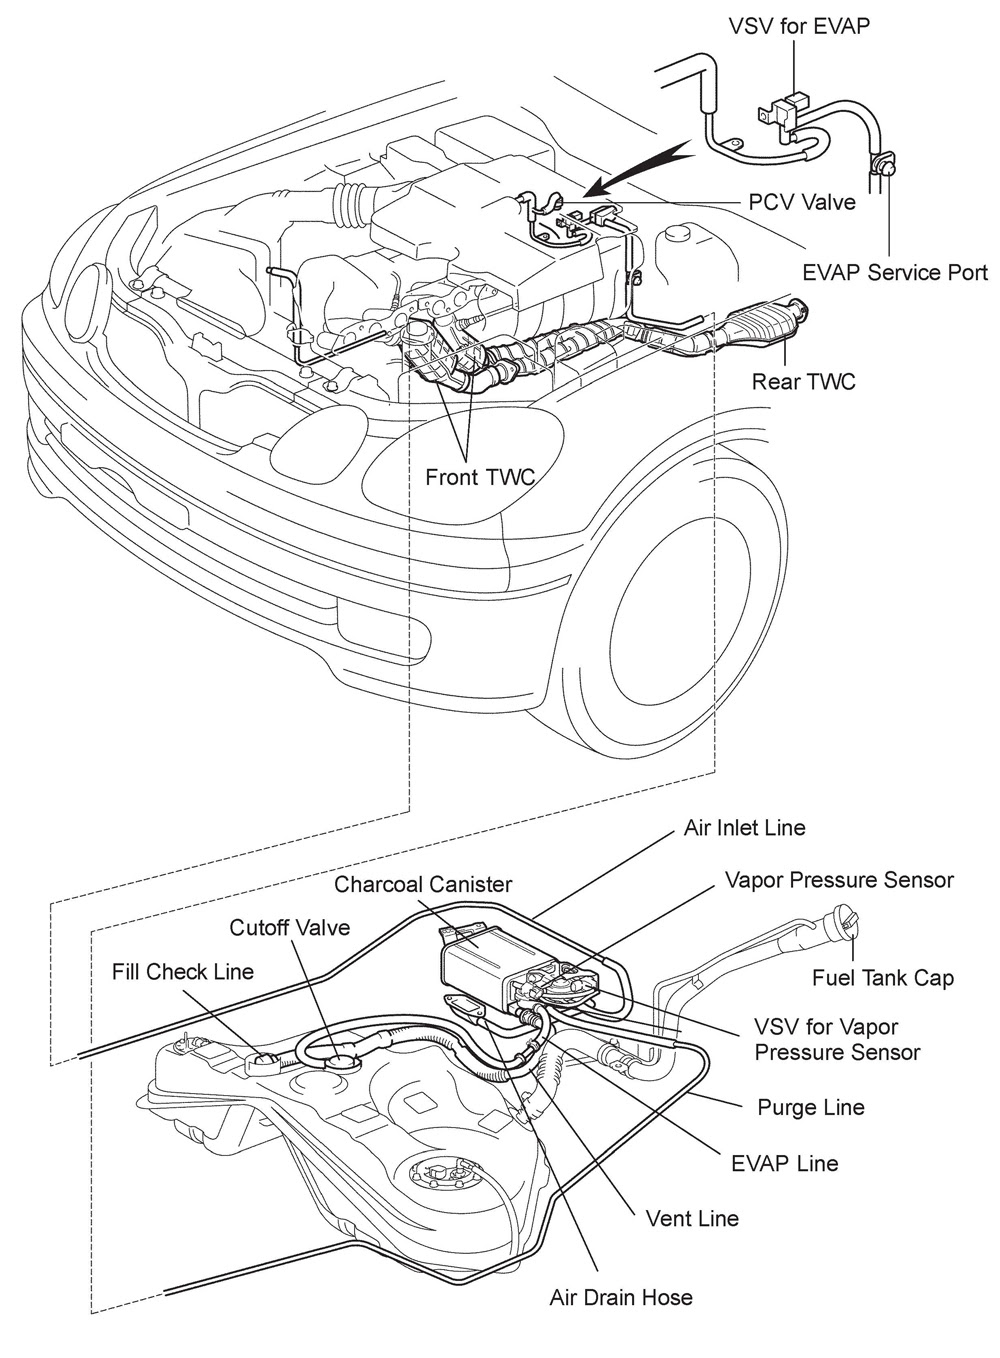 1999 Lexus Gs300 Engine Diagram | wiring schematic |  wave-response.pesarocoupon.it | 1998 Lexus Gs400 Engine Diagram |  | wiring schematic